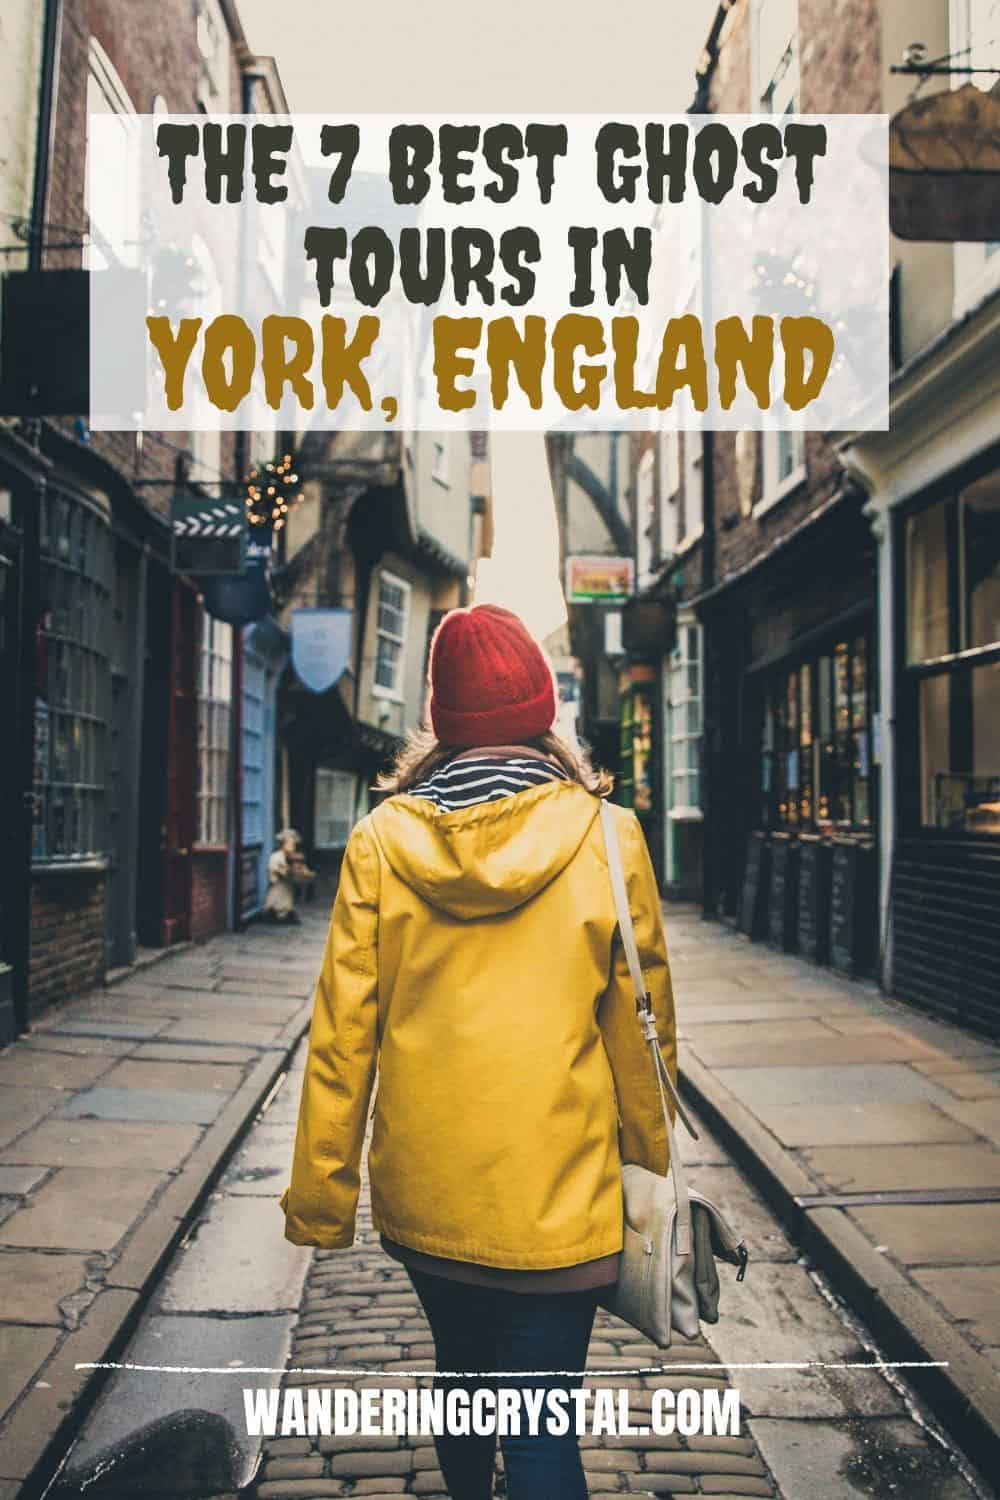 The 7 Best Ghost Tours in York England